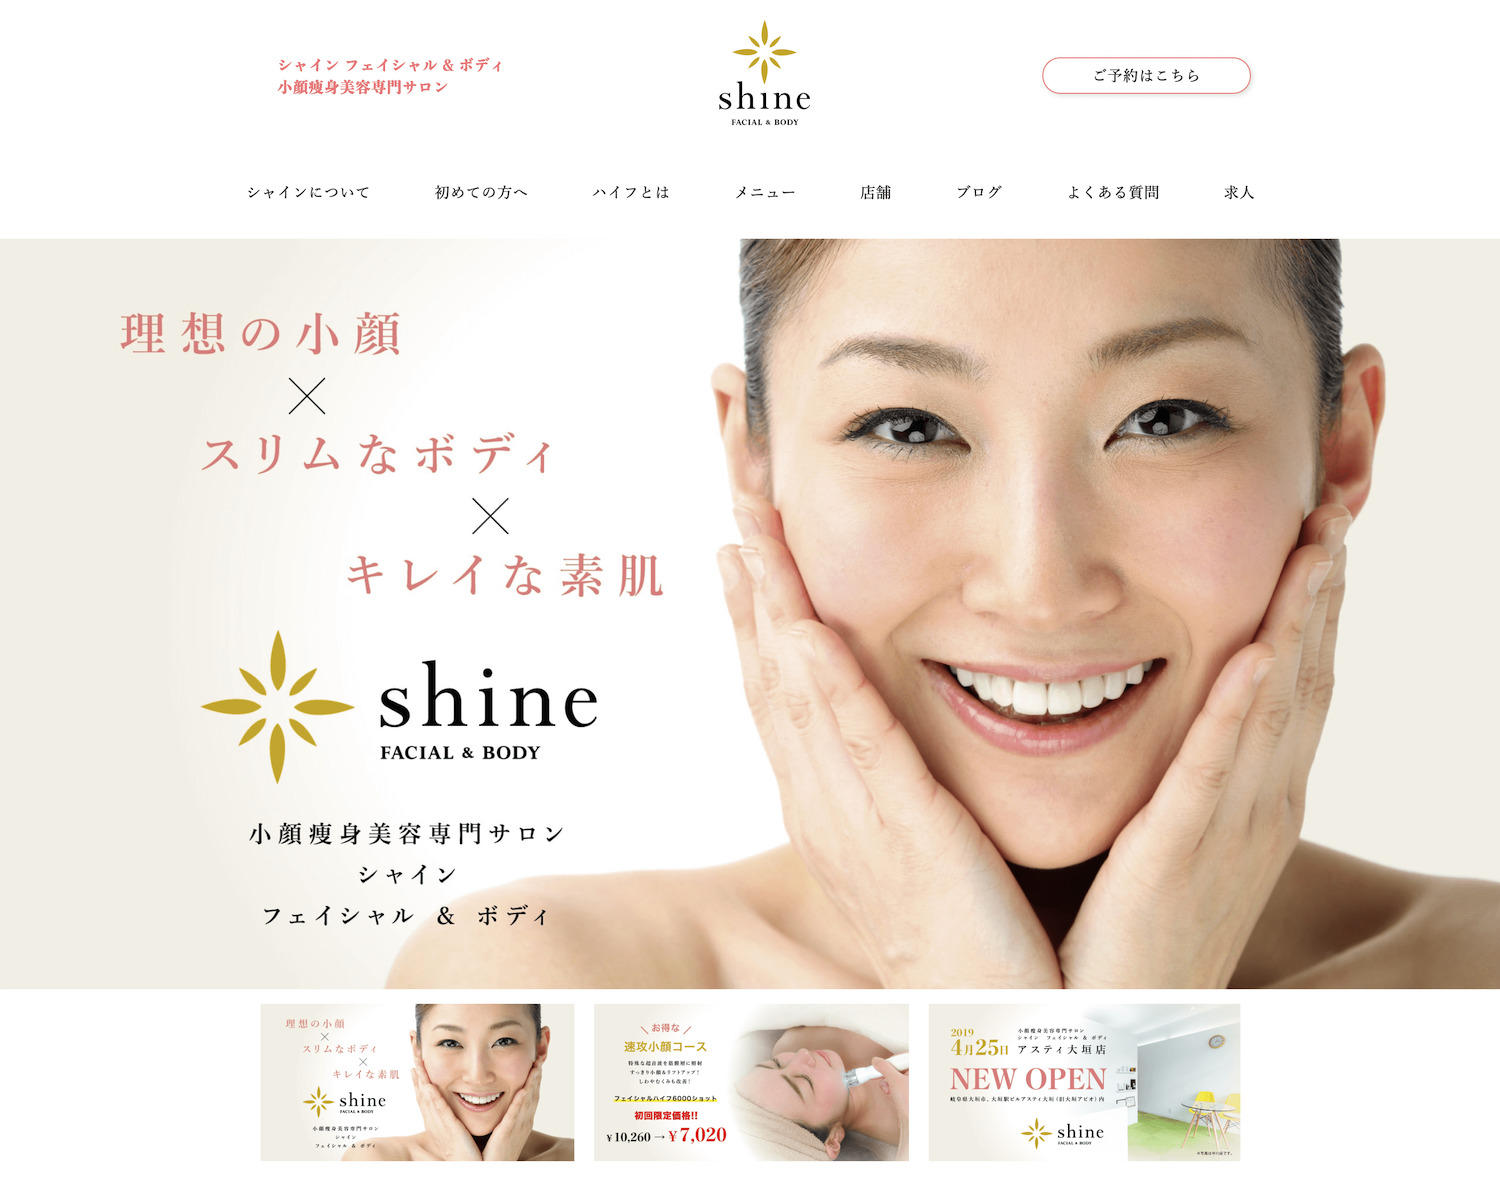 shine FACIAL & BODY Webサイト制作